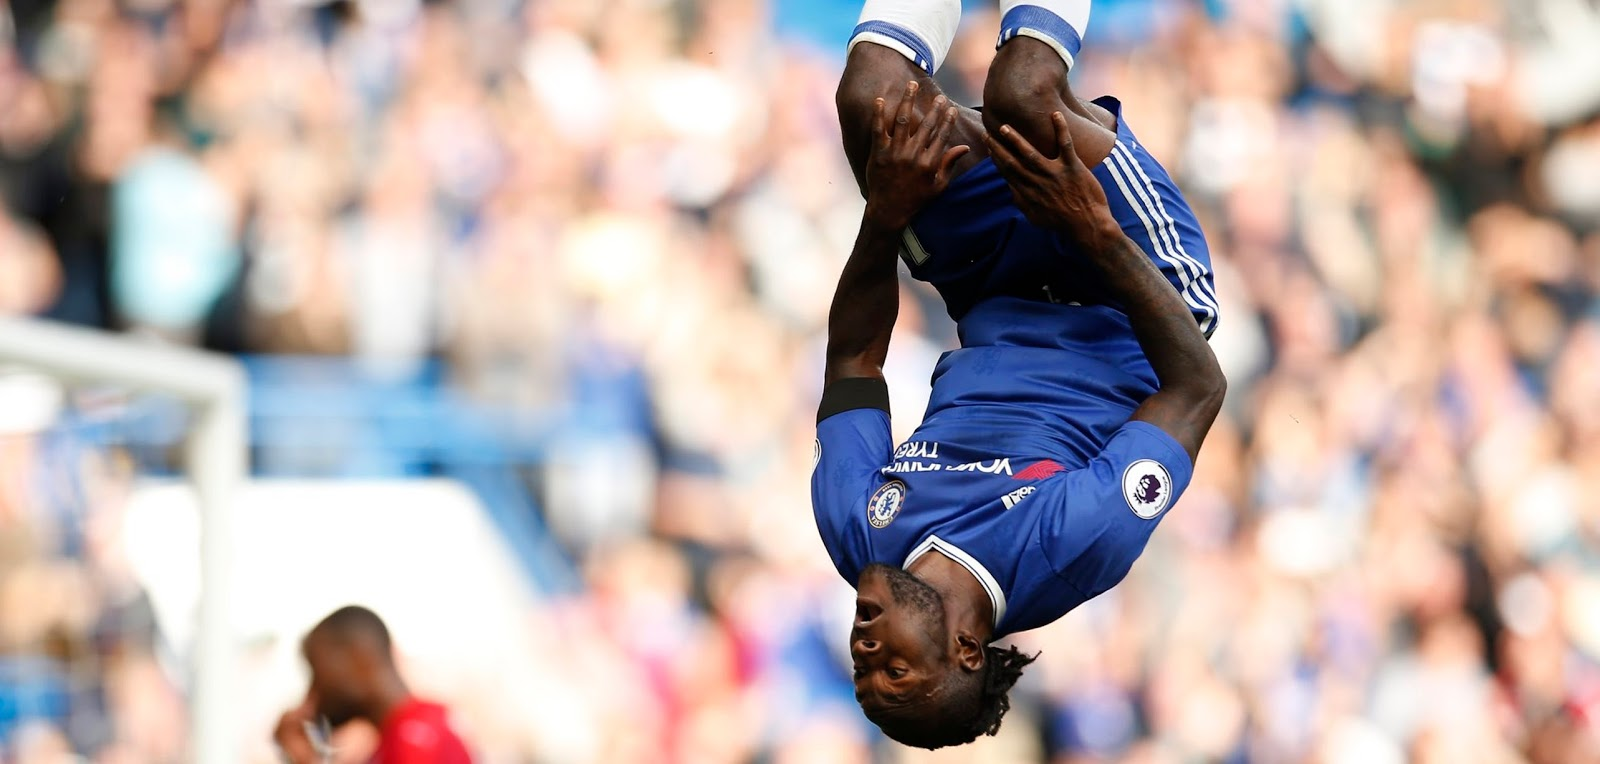 VICTOR MOSES 7